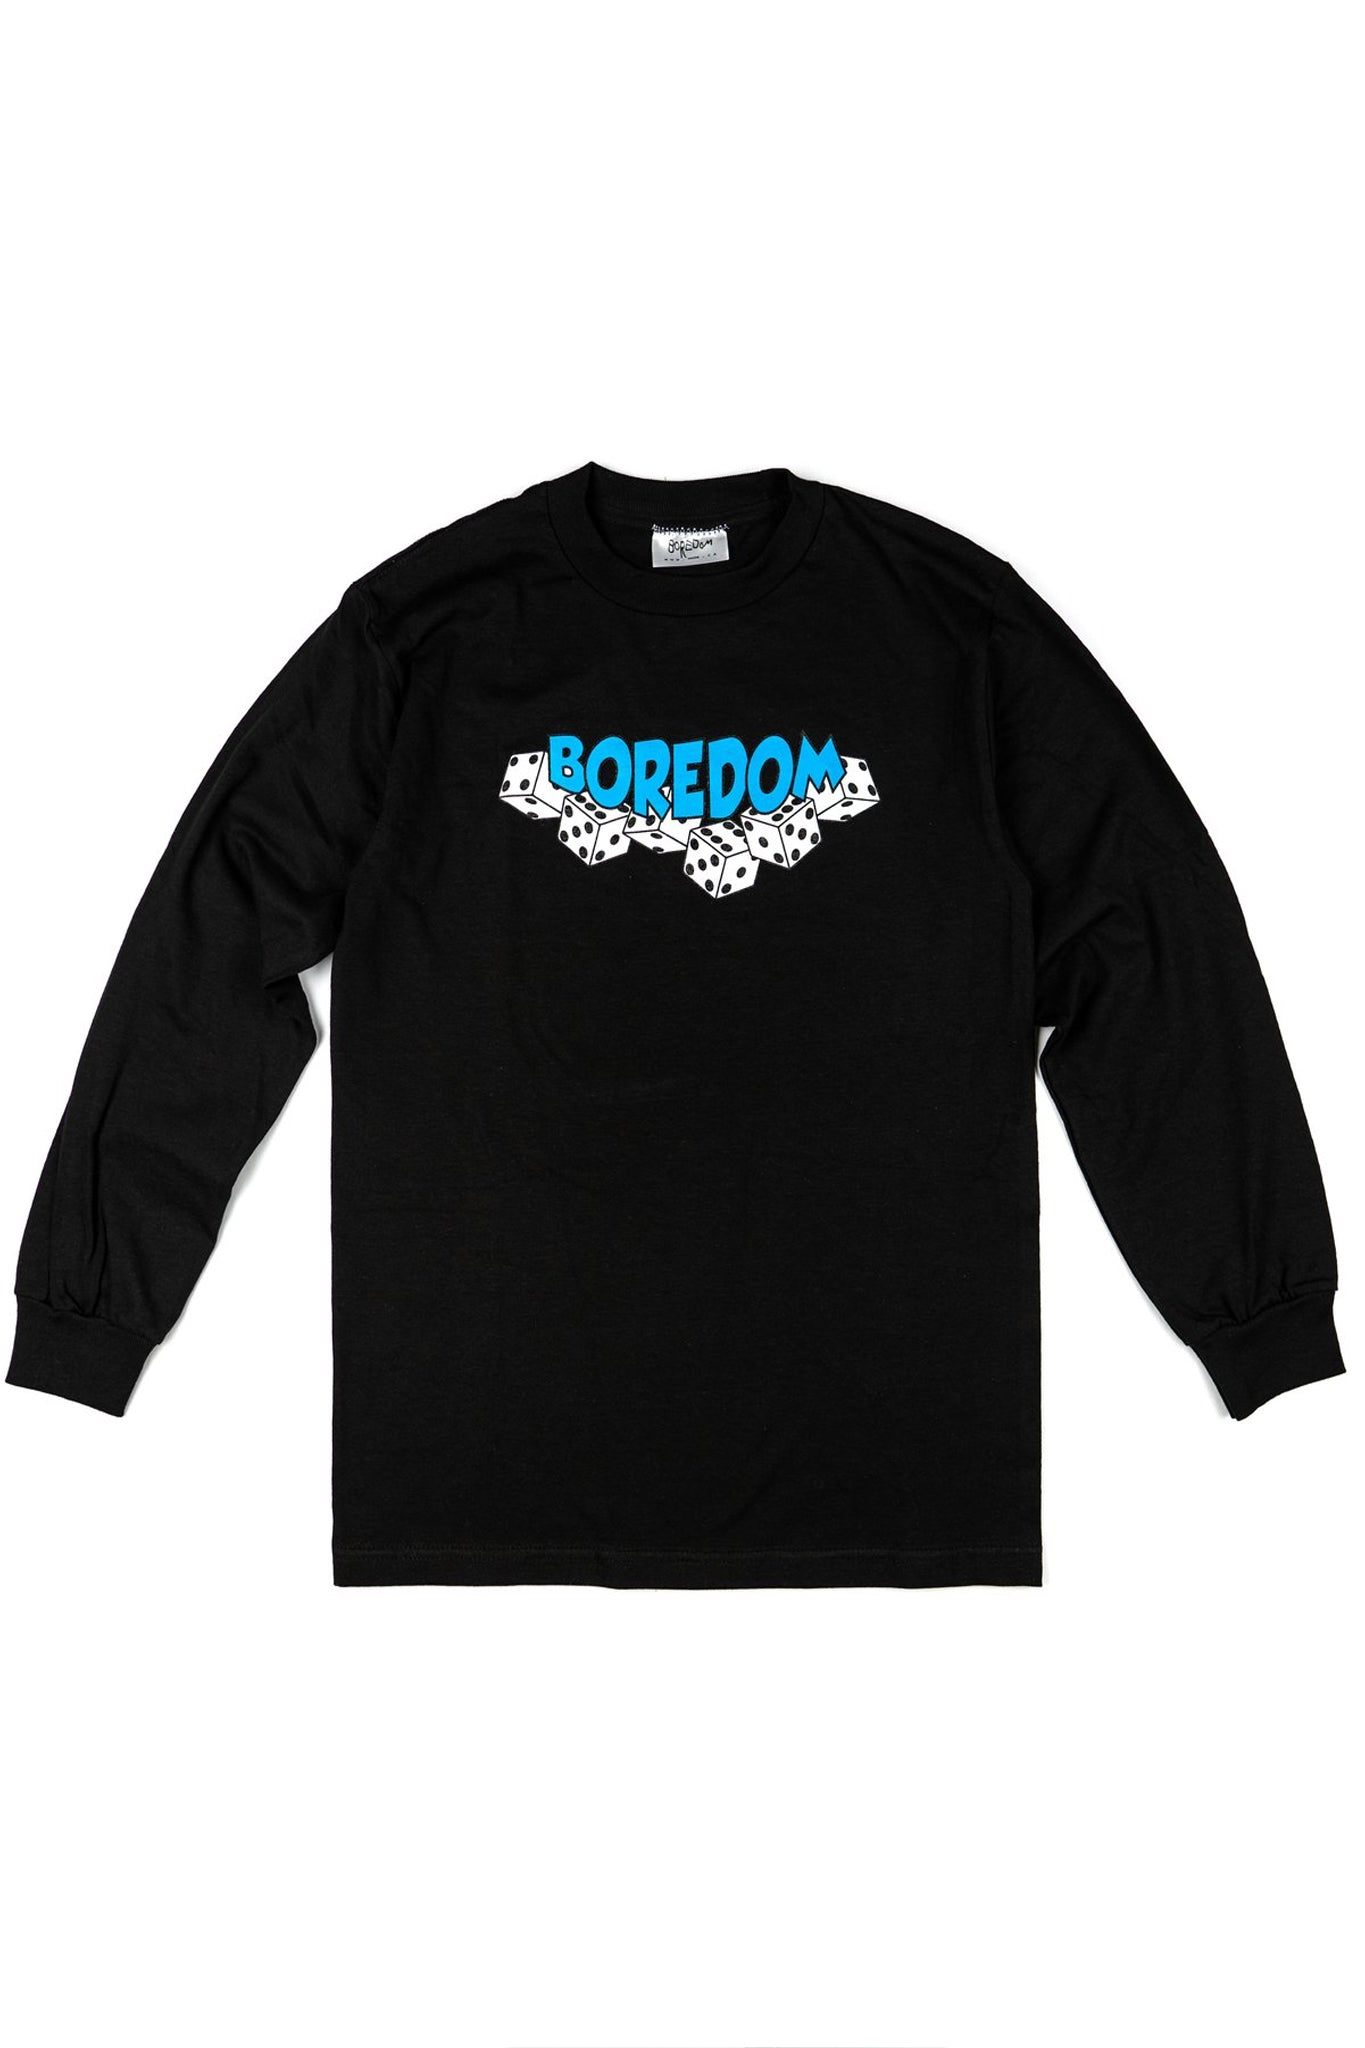 Dice Long Sleeve T-Shirt - Black